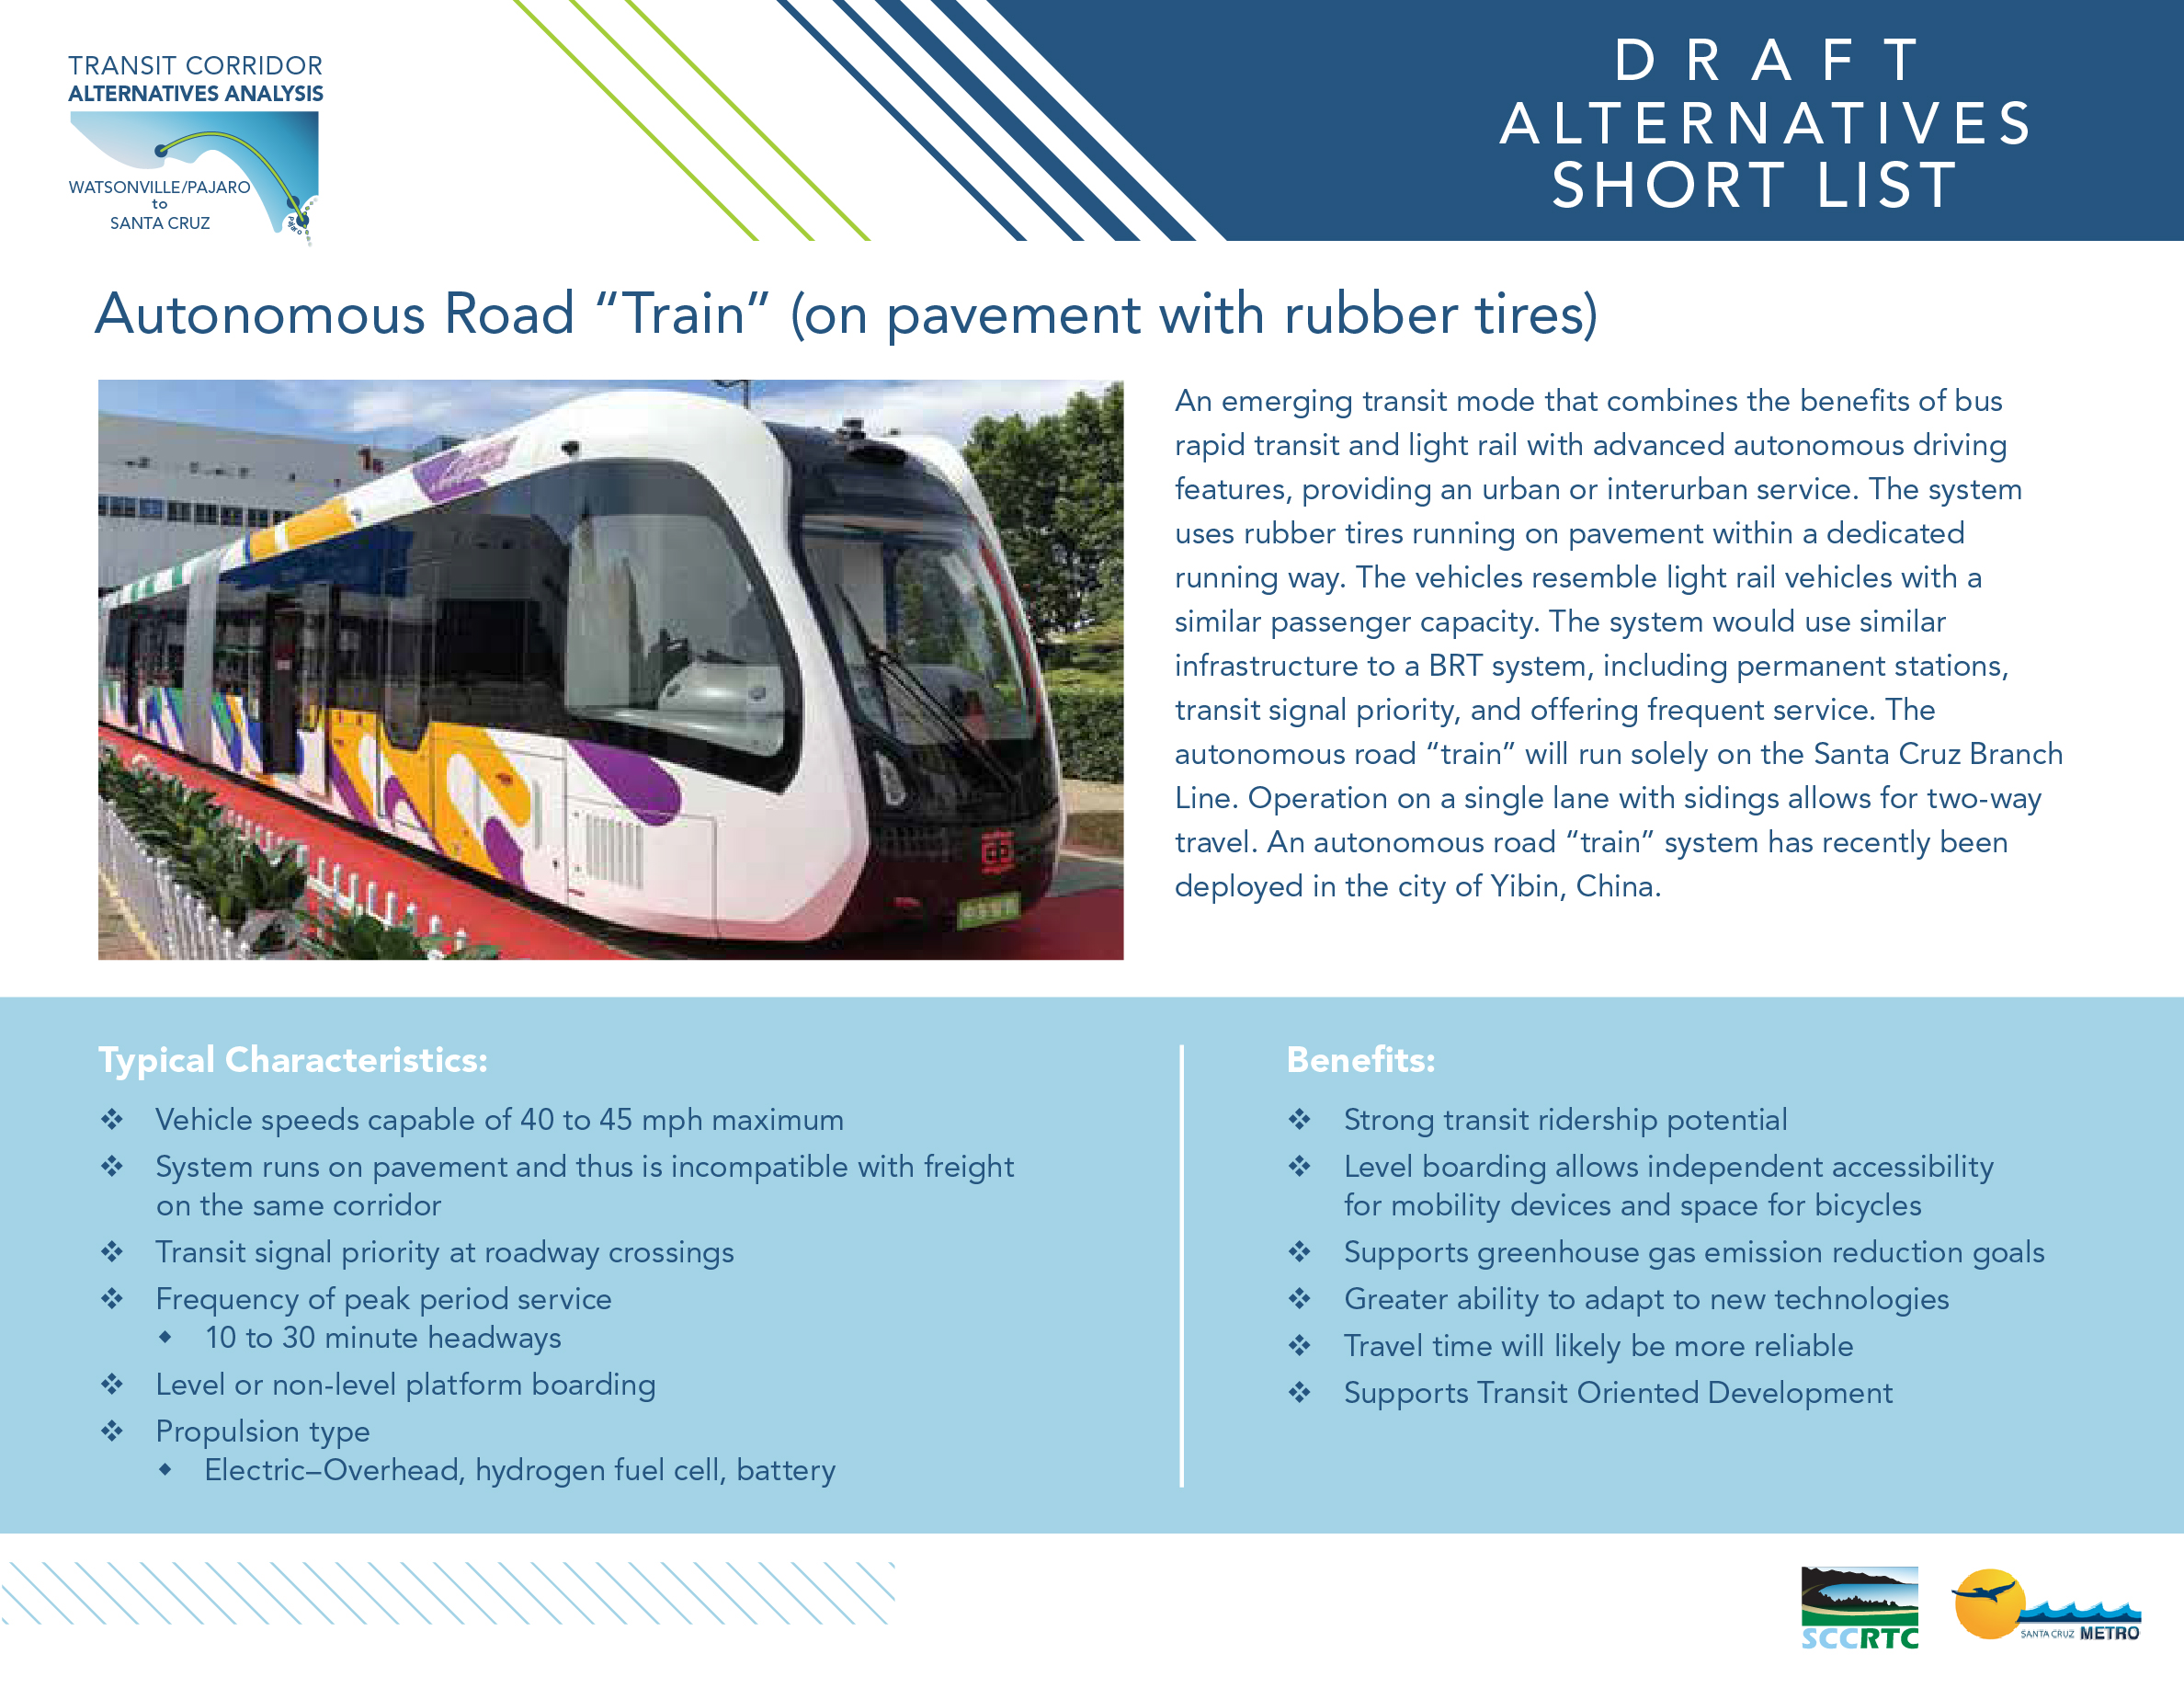 "Board 2: Draft Alternatives – Short List Autonomous Road ""Train"" (on pavement with rubber tires) An emerging transit mode that combines the benefits of bus rapid transit and light rail with advanced autonomous driving features, providing an urban or interurban service. The system uses rubber tires running on pavement within a dedicated running way. The vehicles resemble light rail vehicles with a similar passenger capacity. The system would use similar infrastructure to a BRT system, including permanent stations, transit signal priority, and offering frequent service. The autonomous road ""train"" will run solely on the Santa Cruz Branch Line. Operation on a single lane with sidings allows for two-way travel. An autonomous road ""train"" system has recently been deployed in the city of Yibin, China. Typical Characteristics: • Vehicle speeds capable of 40 to 45 mph maximum • System runs on pavement and thus is incompatible with freight on the same corridor • Transit signal priority at roadway crossings • Frequency of peak period service • 10 to 30 minute headways • Level or non-level platform boarding • Propulsion type • Electric–Overhead, hydrogen fuel cell, battery Benefits: • Strong transit ridership potential • Level boarding allows independent accessibility for mobility devices and space for bicycles • Supports greenhouse gas emission reduction goals • Greater ability to adapt to new technologies • Travel time will likely be more reliable • Supports Transit Oriented Development"